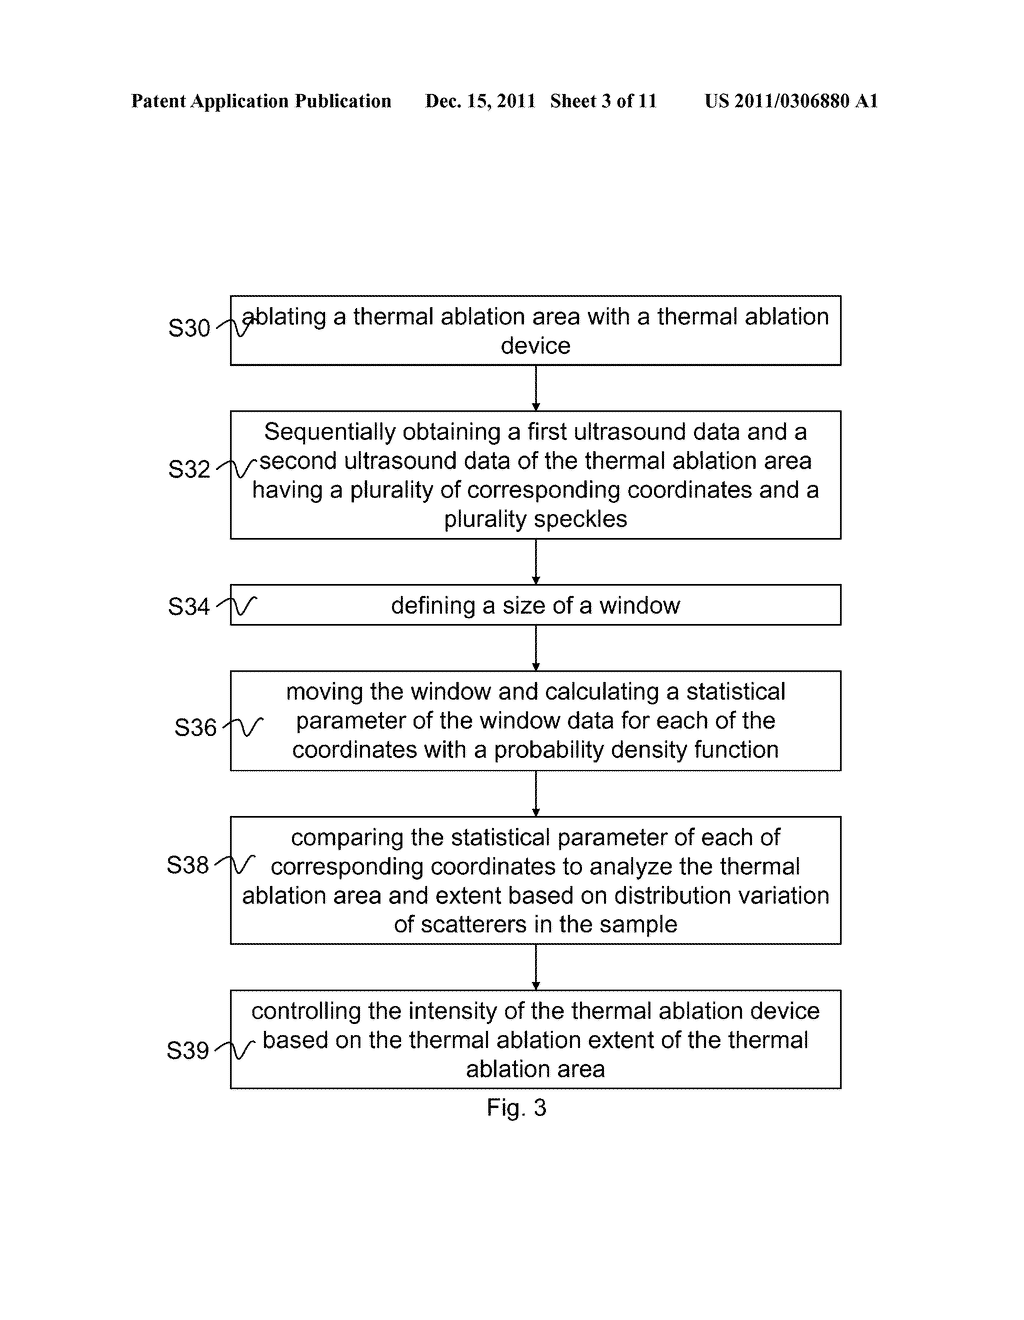 METHOD FOR DYNAMICALLY ANALYZING DISTRIBUTION VARIATION OF SCATTERERS AND     APPLICATION USING THE SAME - diagram, schematic, and image 04